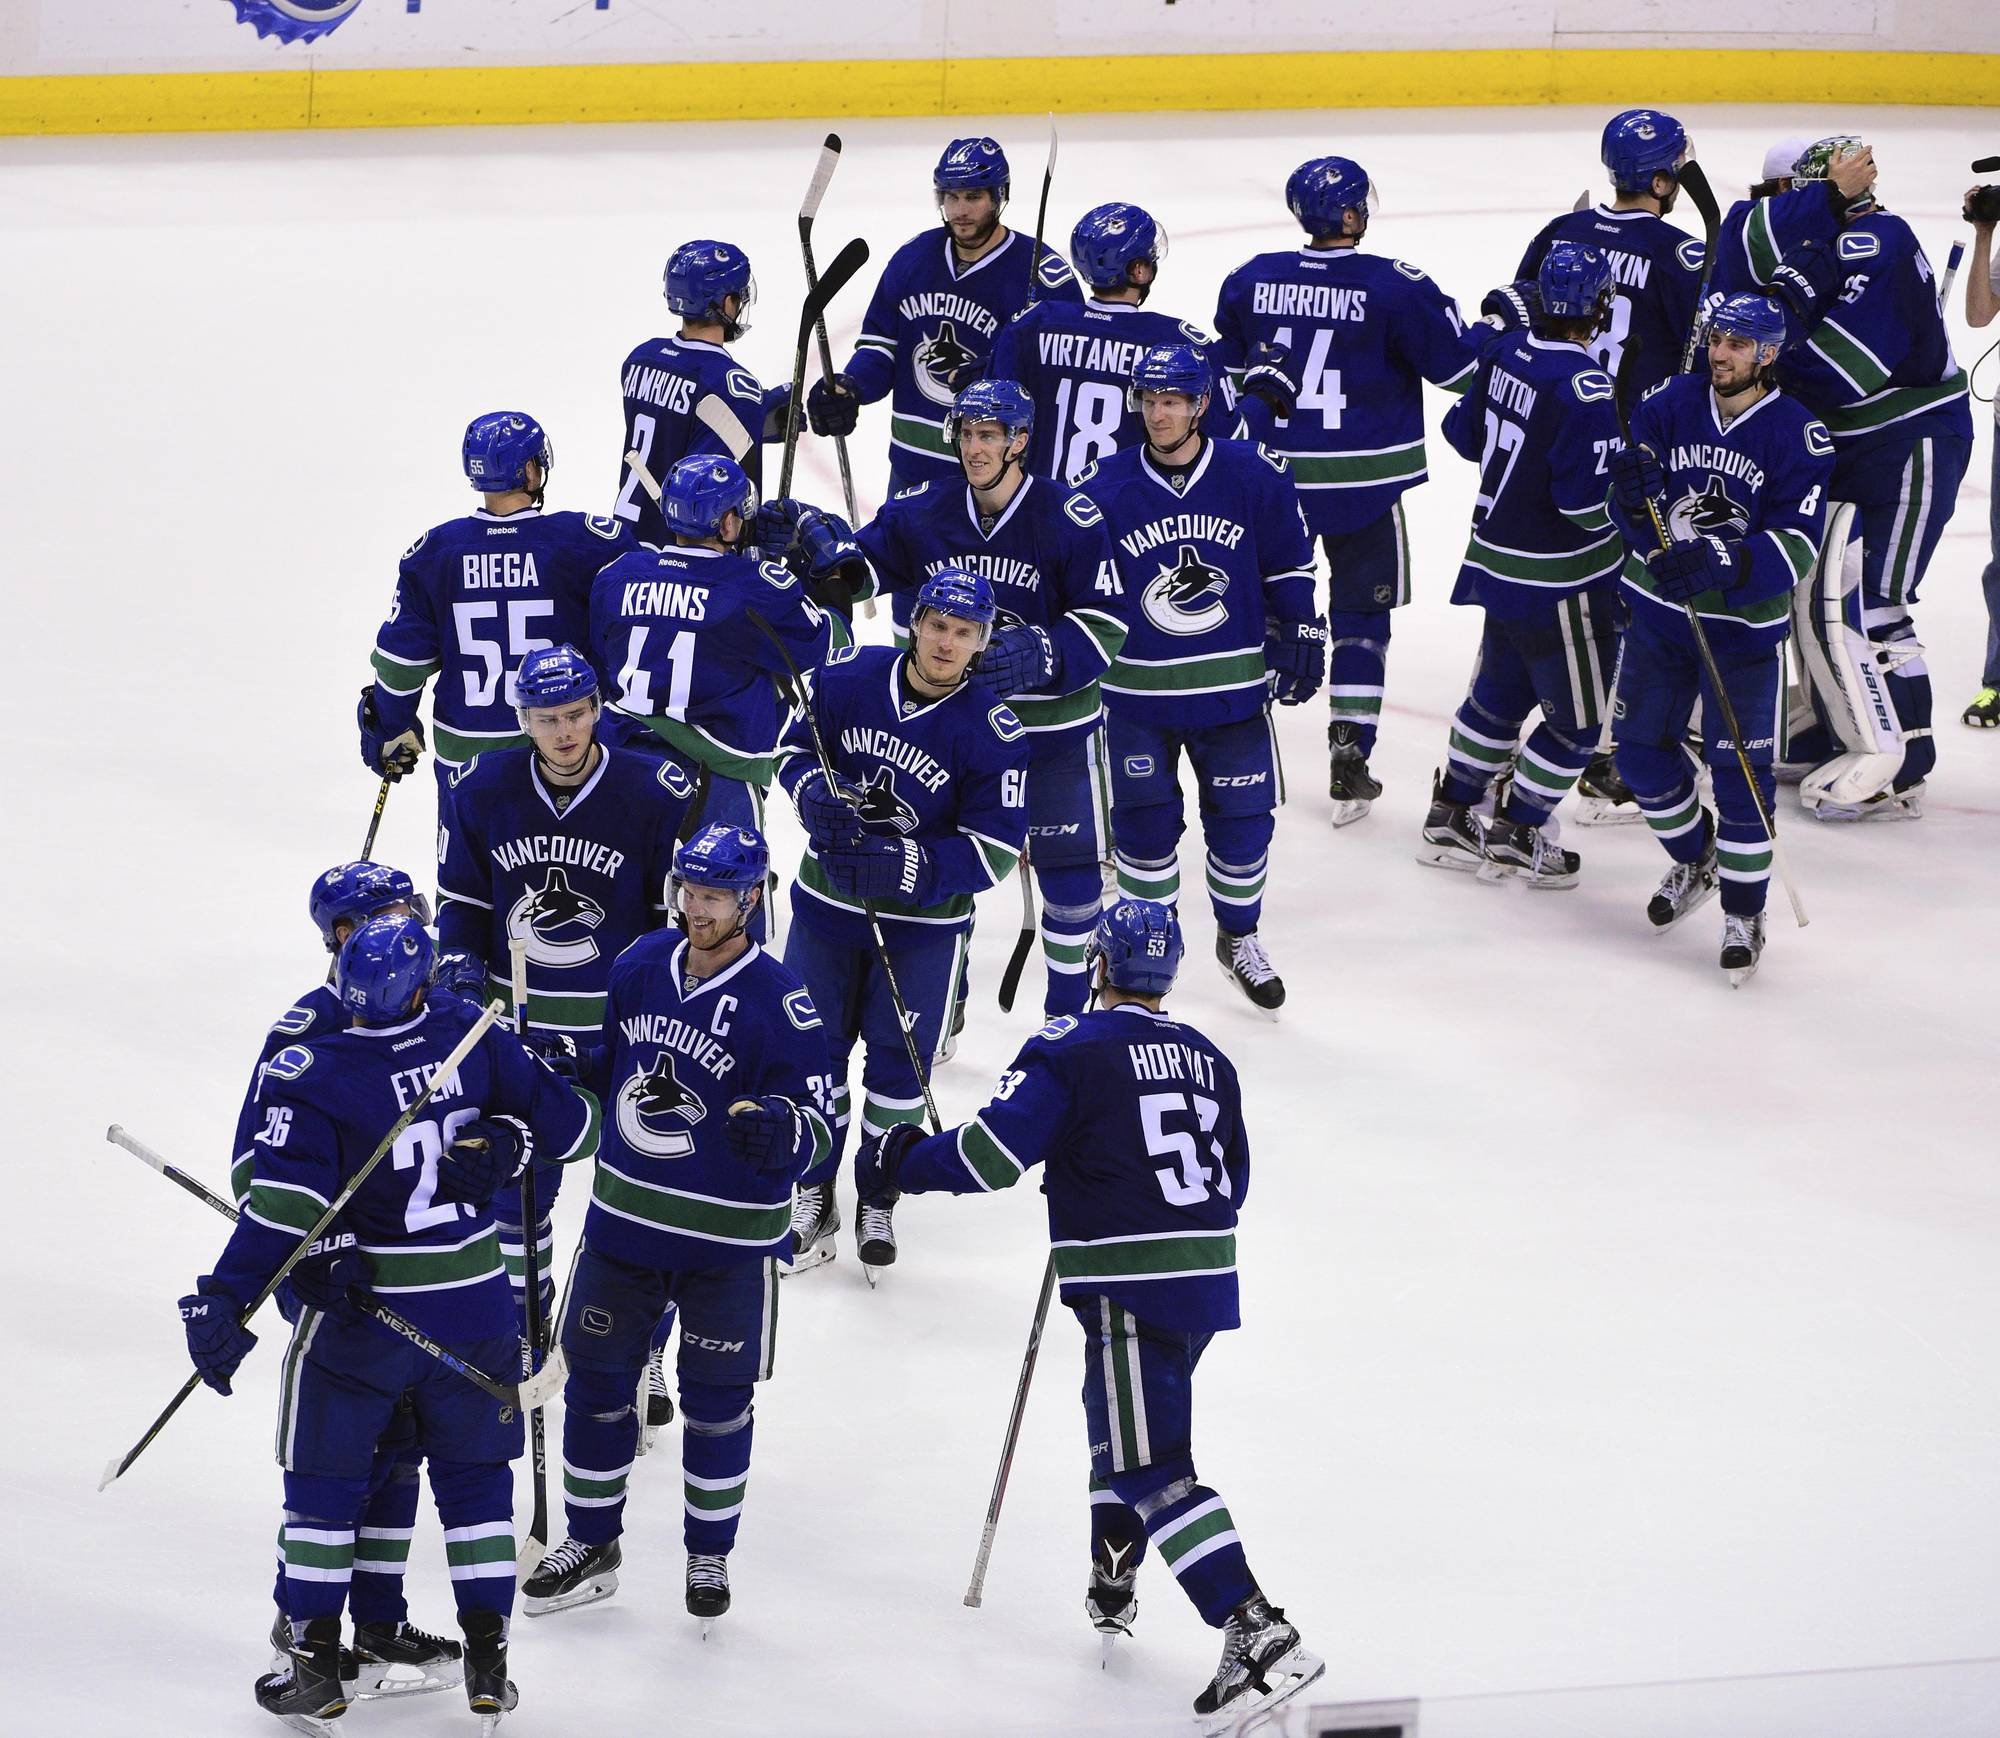 Vancouver Canucks: Time to rebuild?